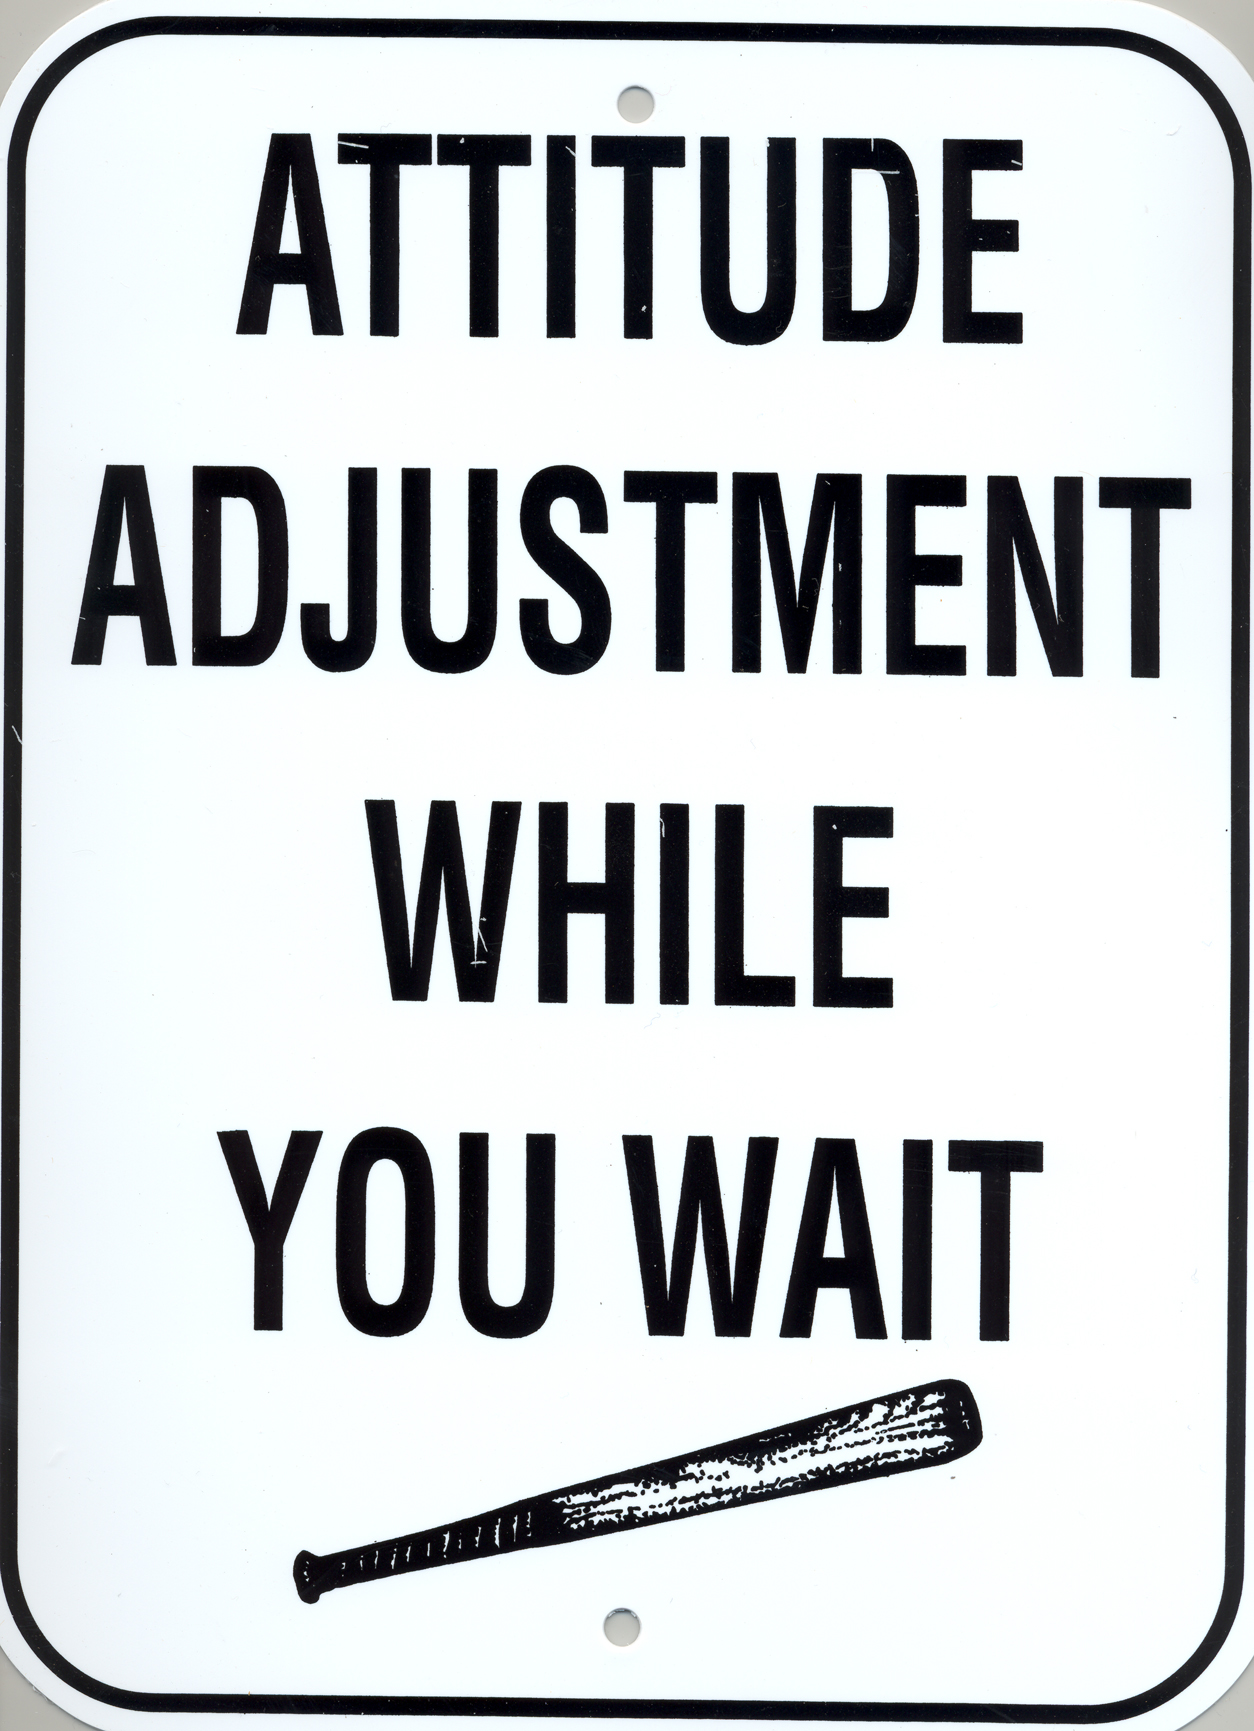 Attitude Adjustment While You Wait